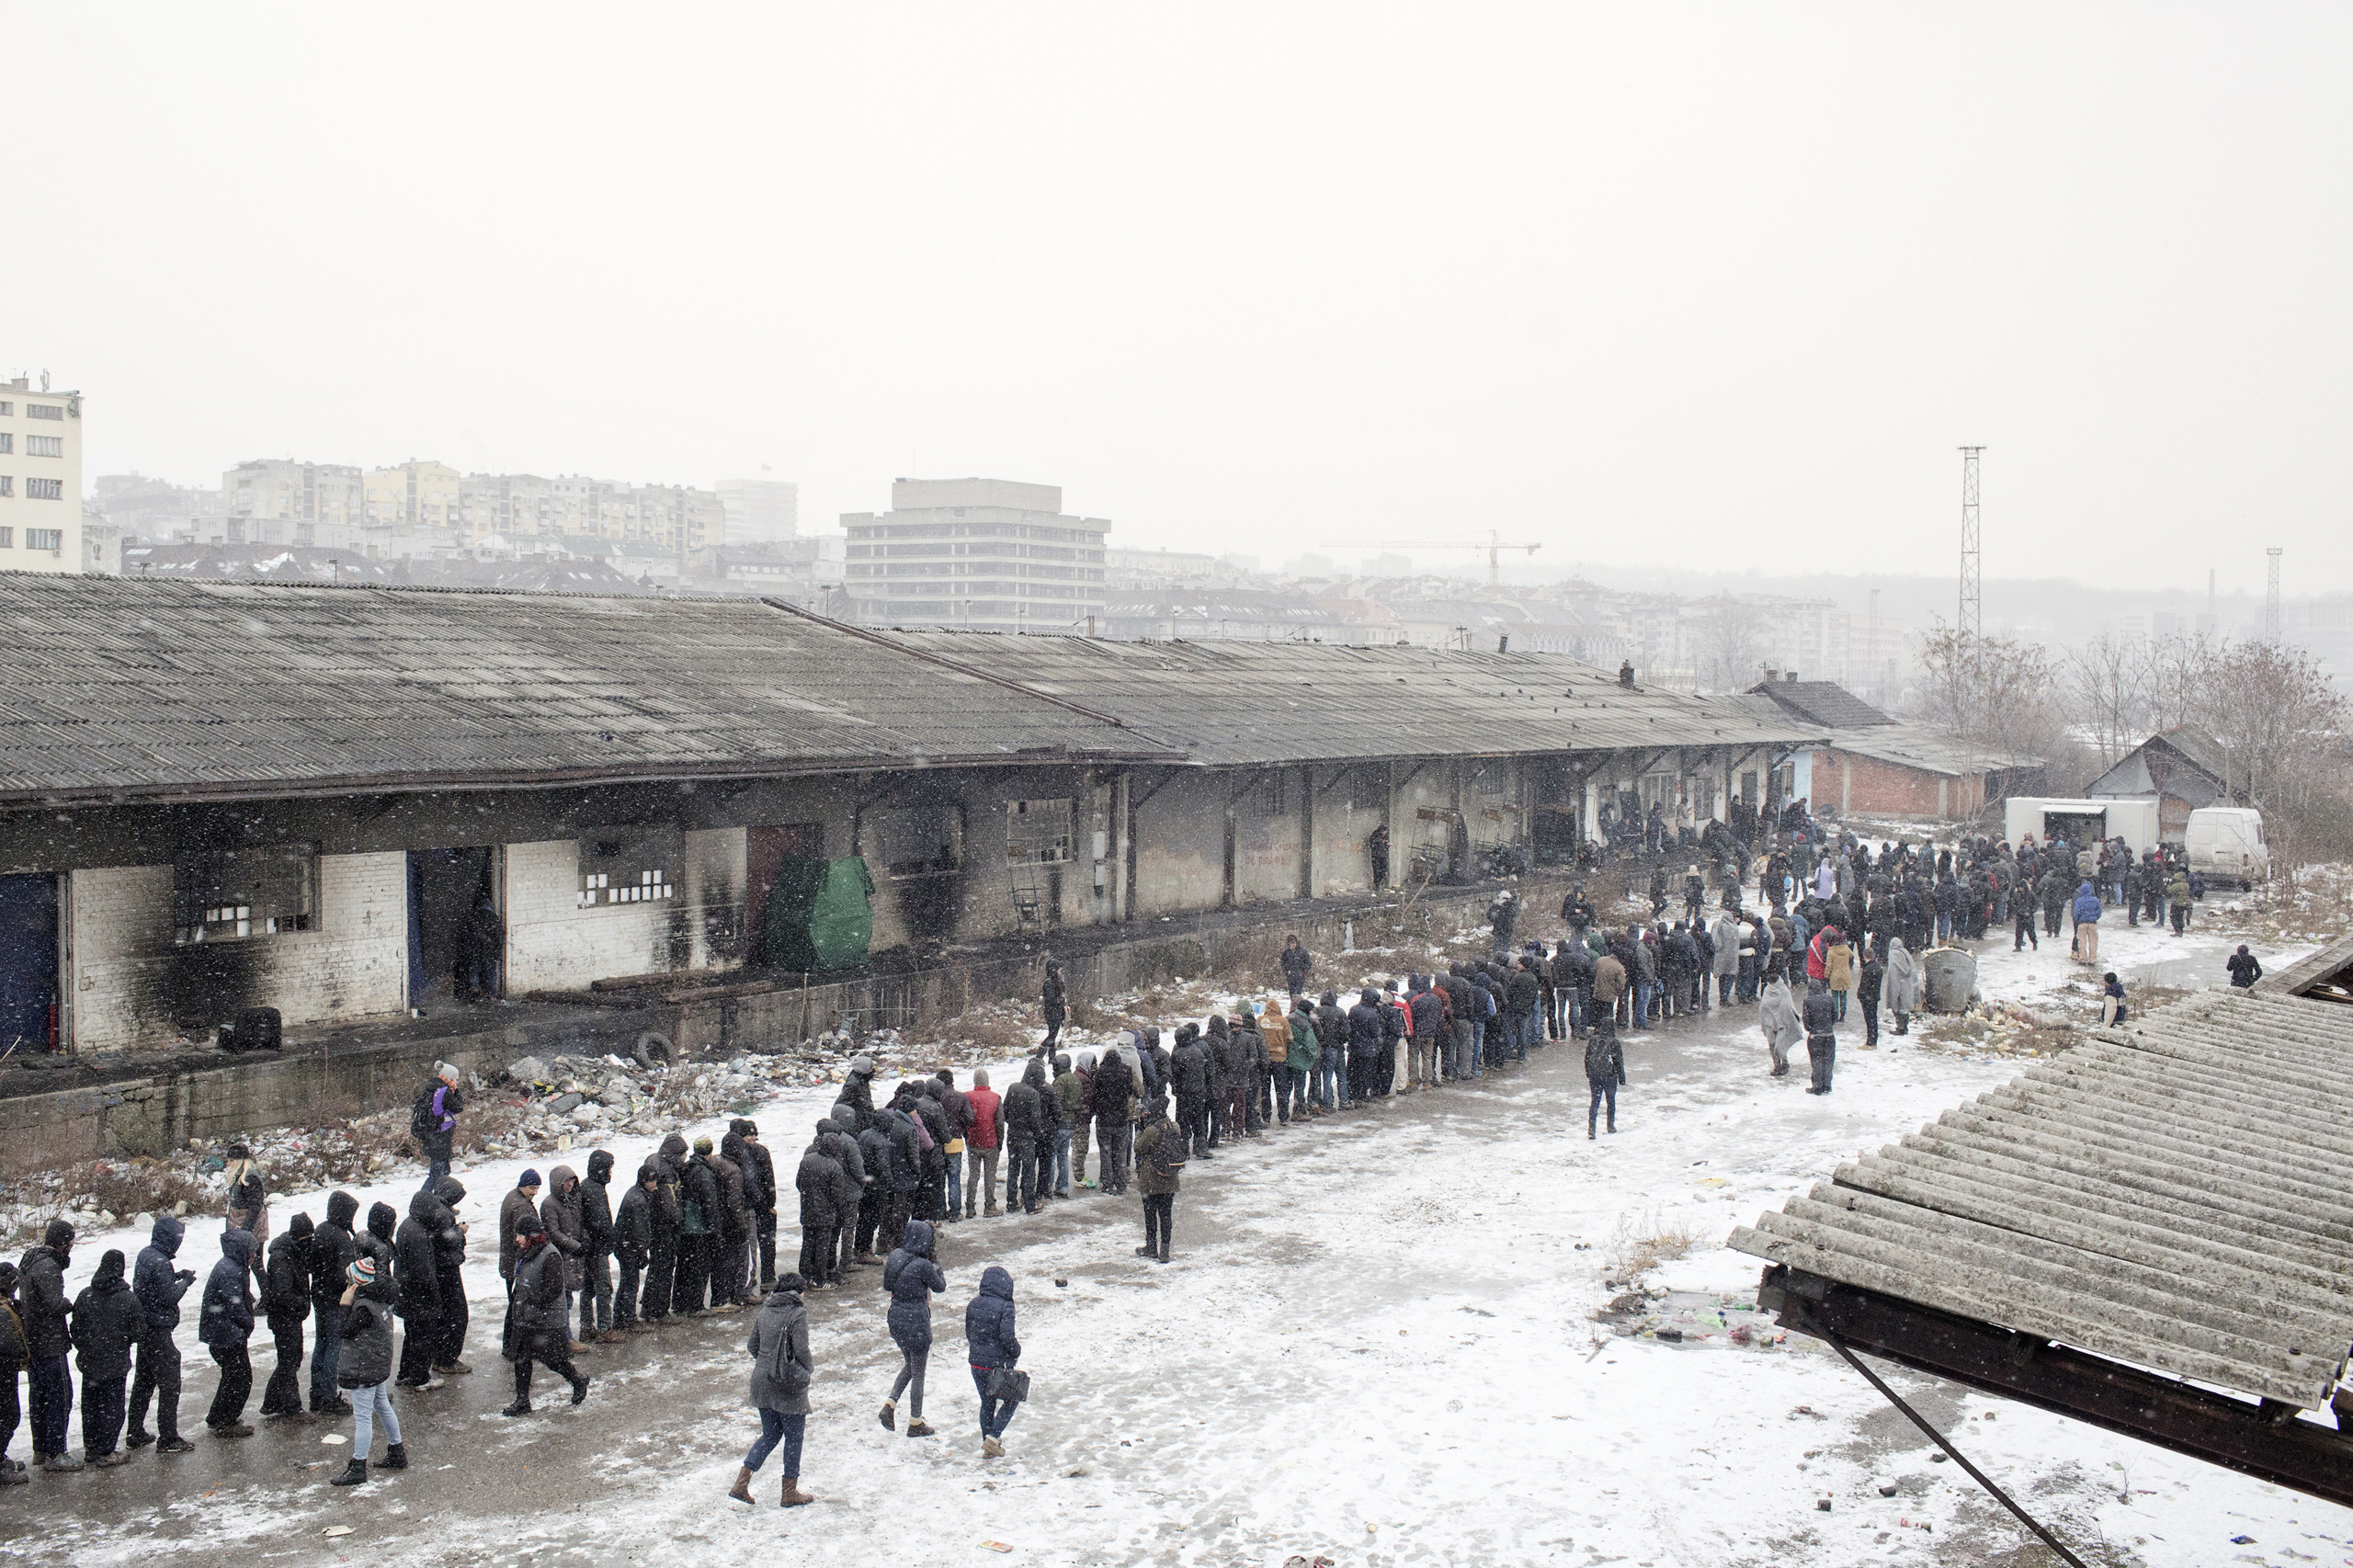 Migrants line up for food distributed by volunteers outside of derelict warehouses which are being used for shelter, Belgrade, Serbia, Jan. 17, 2017. Temperatures fell below 32F in the night.